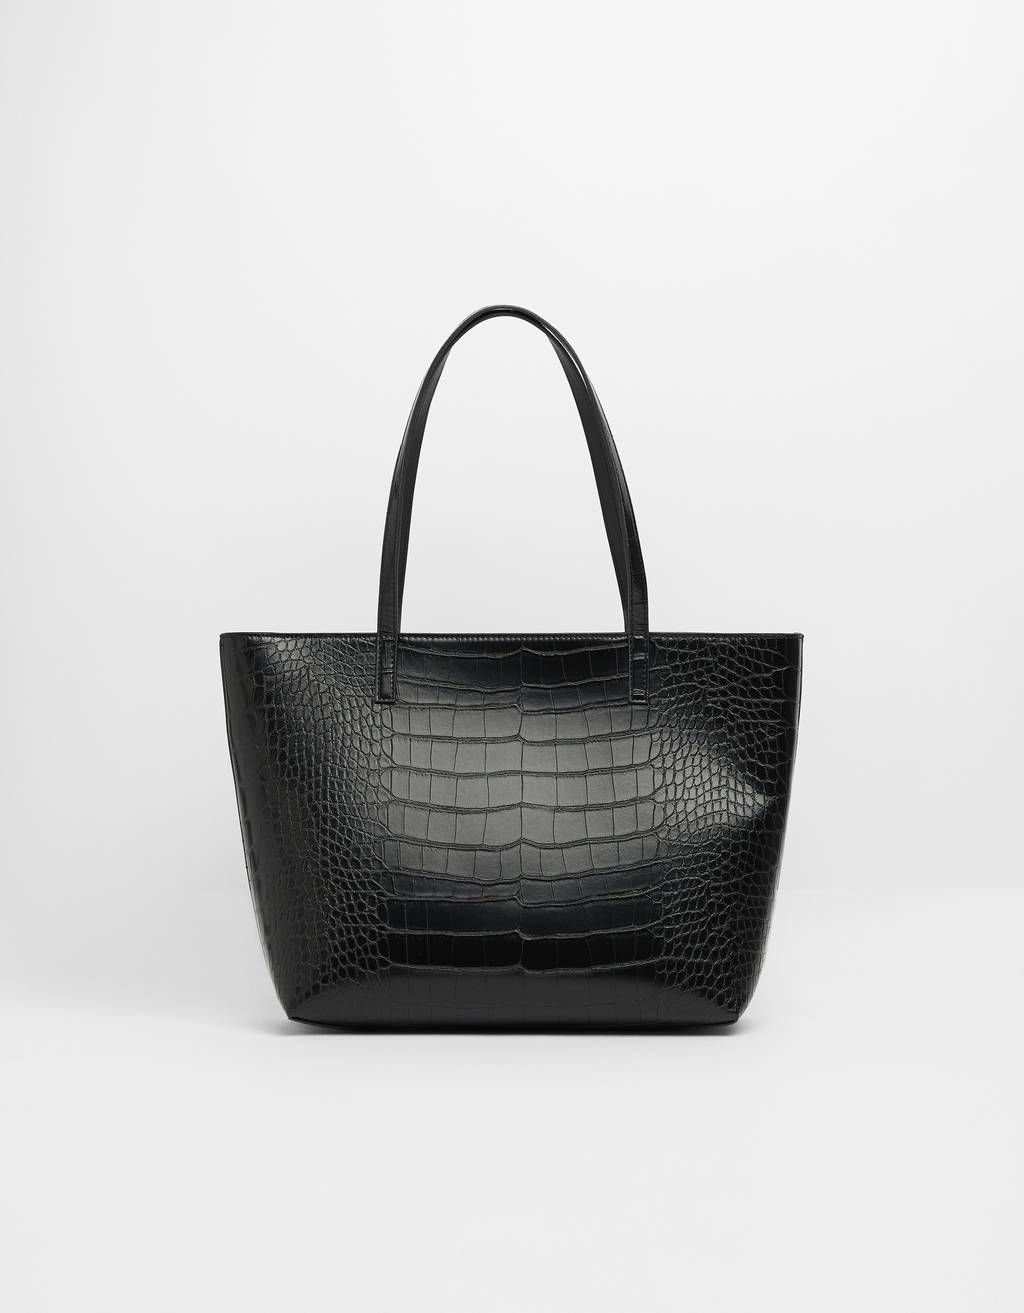 Sac tote bag imitation croco